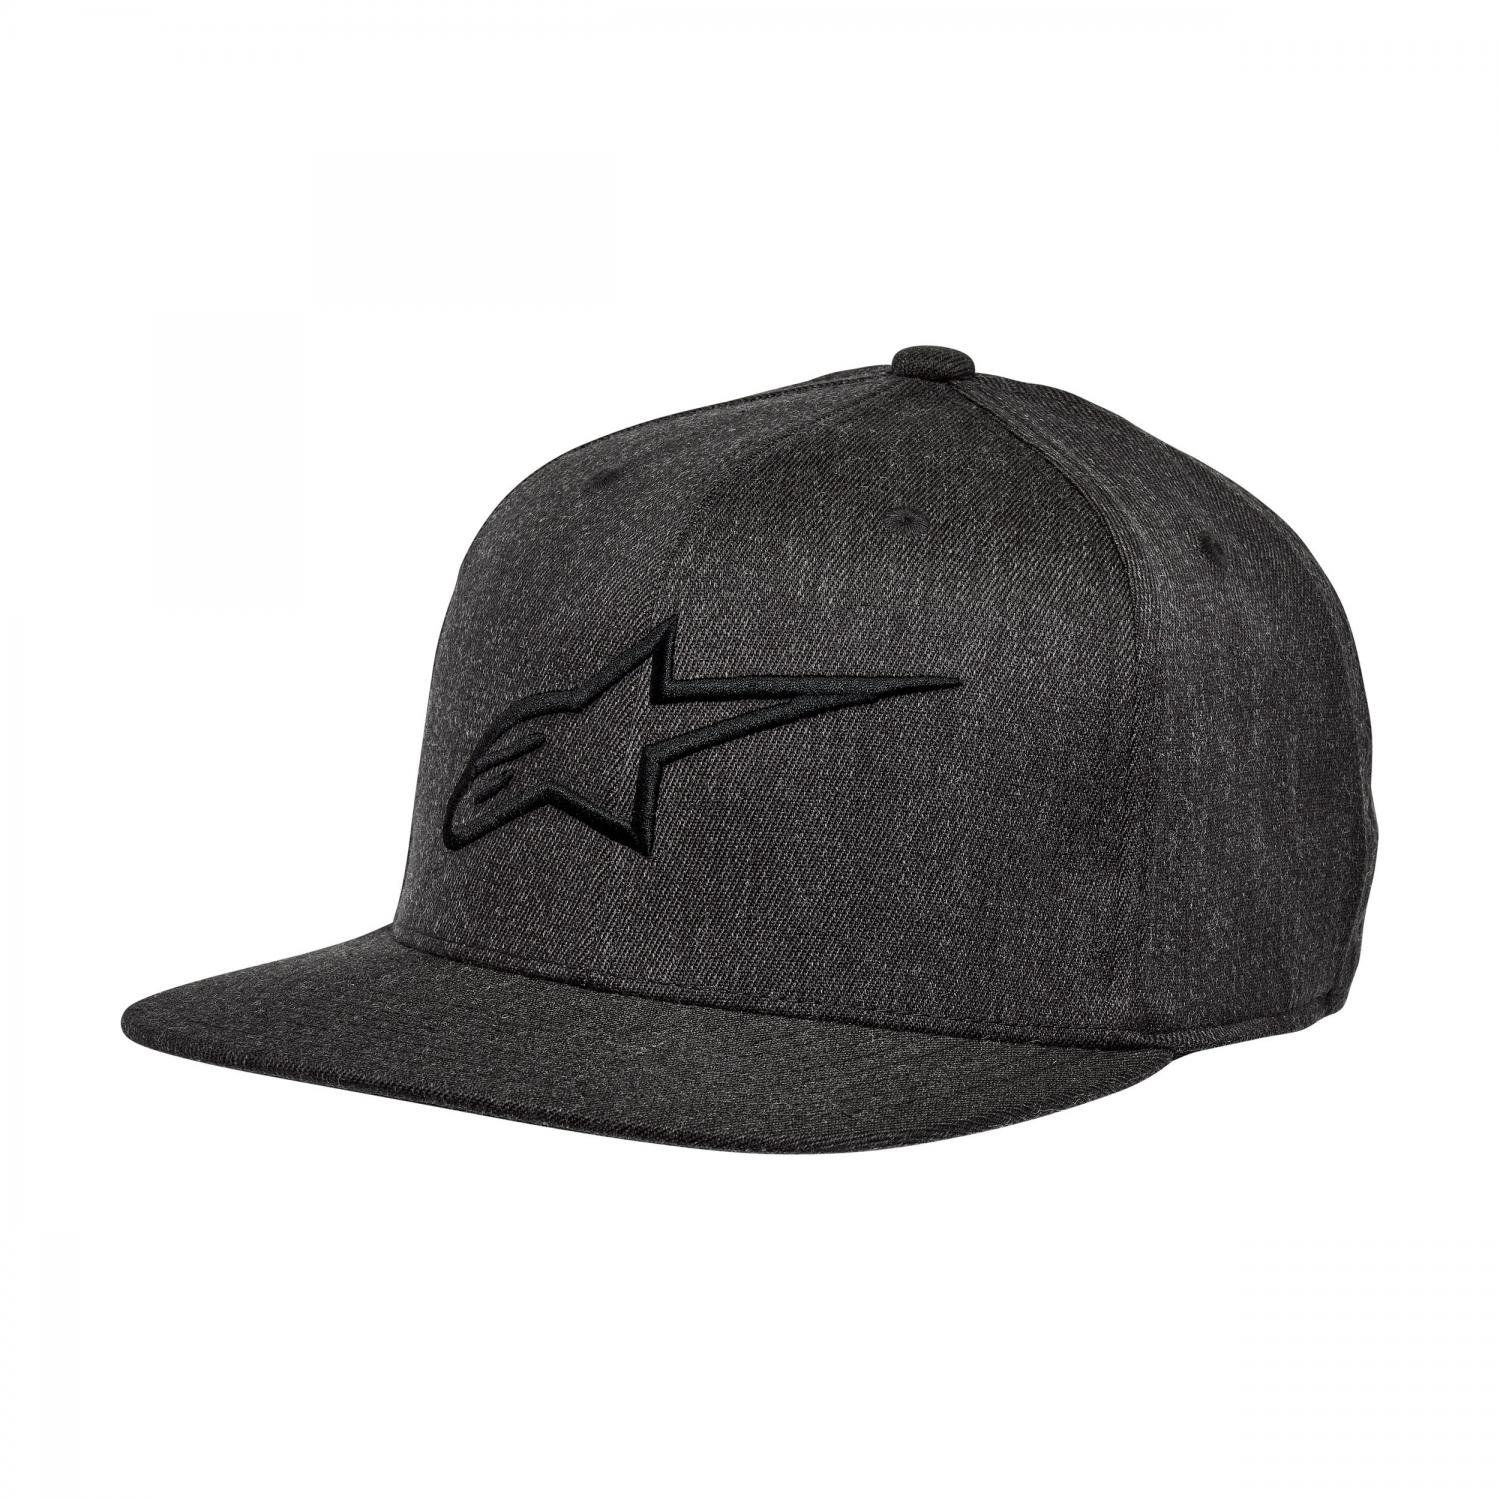 Keps Ageless Flat Hat Charcoal S/M